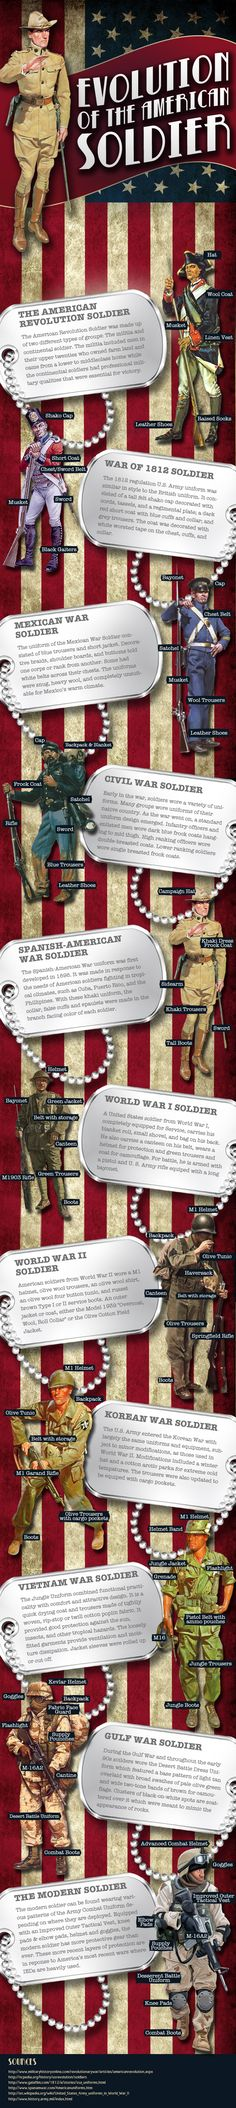 Evolution of the American Soldier's Uniform ~lowvarates.com/va-loan-blog/the-evolution-of-the-american-soldiers-uniform